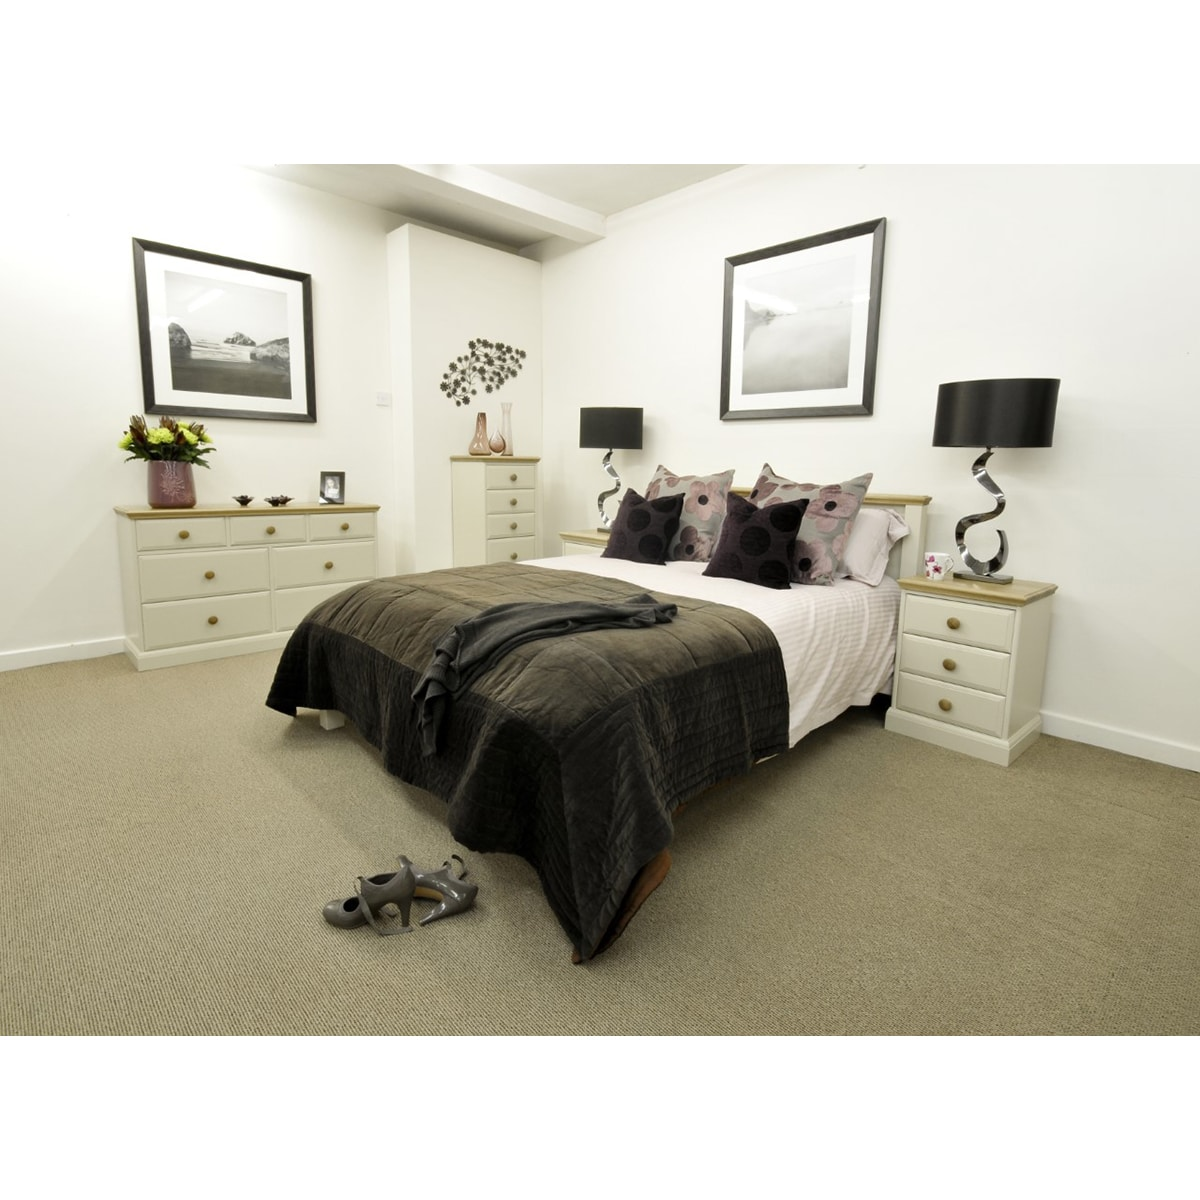 New England 4 6 Double Bed Furniture And Mirror